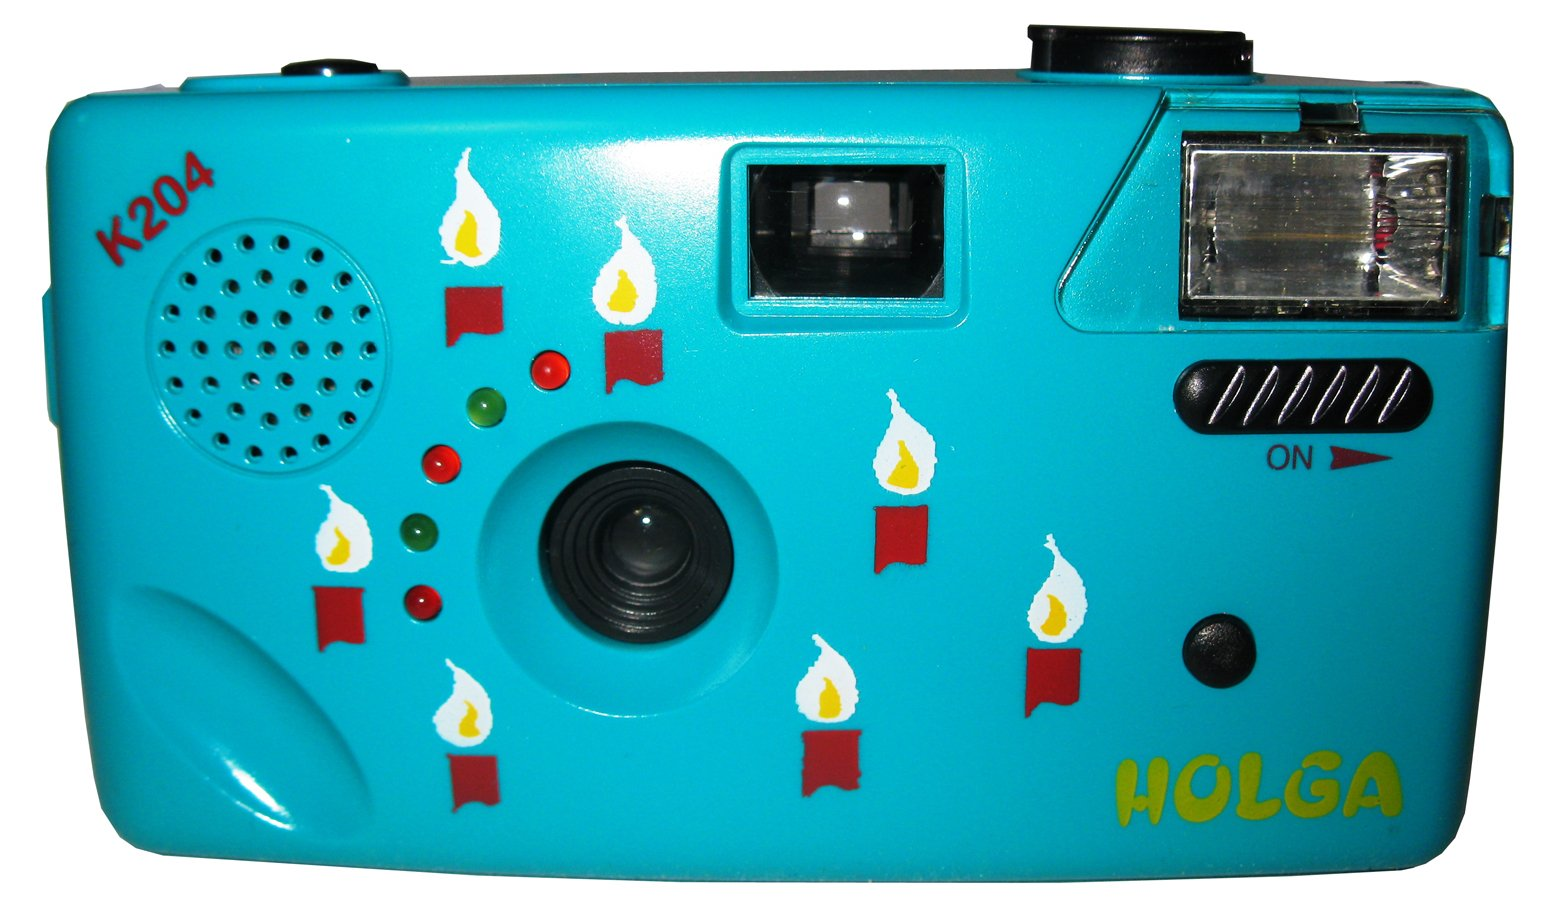 Holga K204 Blue Original Noise Making 35mm Film Camera ... by Holga